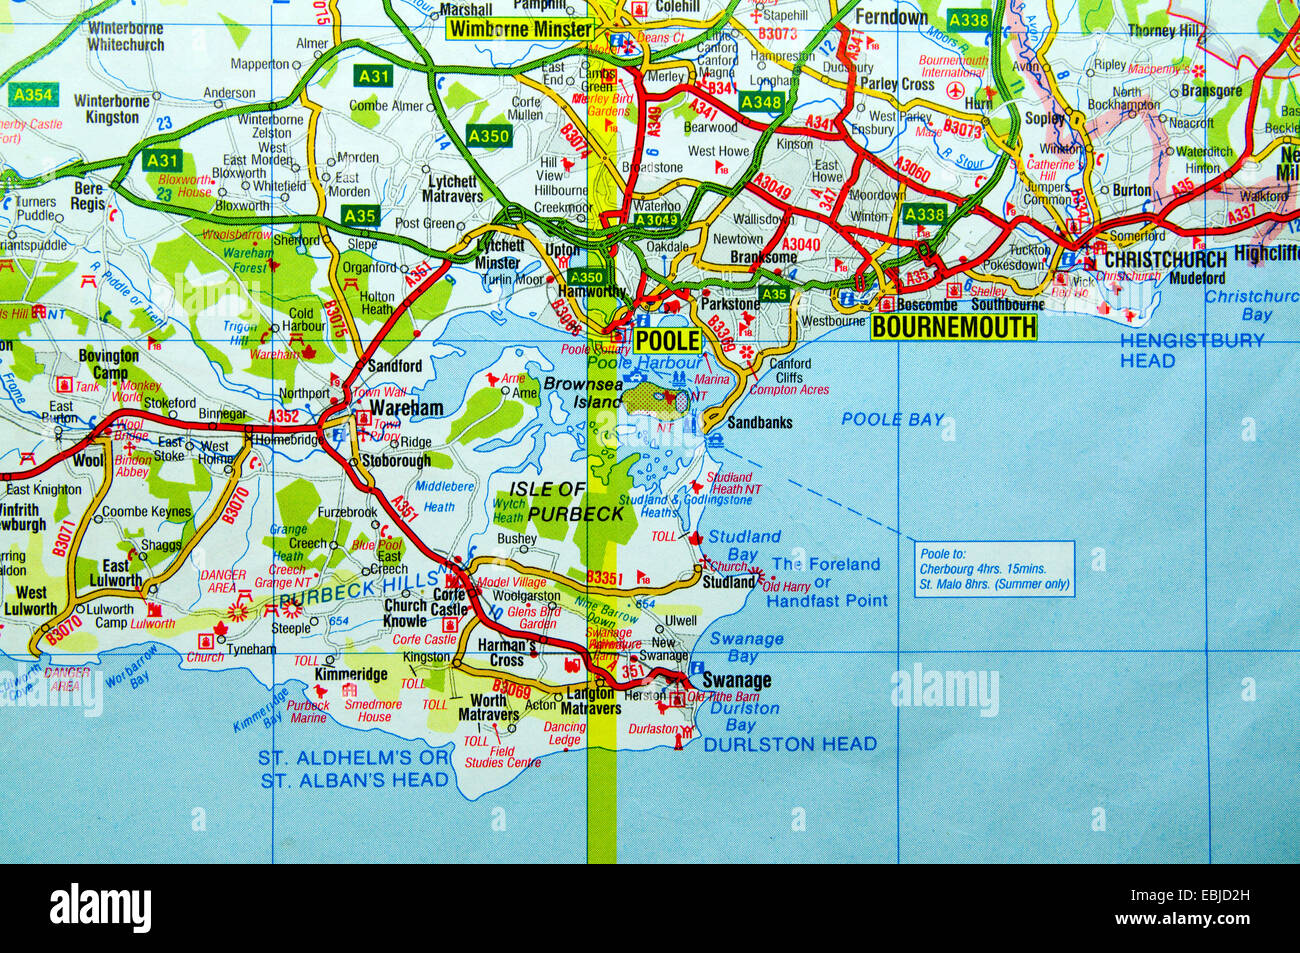 Poole England Map.Road Map Of Poole Poole Harbour And Bournemouth England Stock Photo